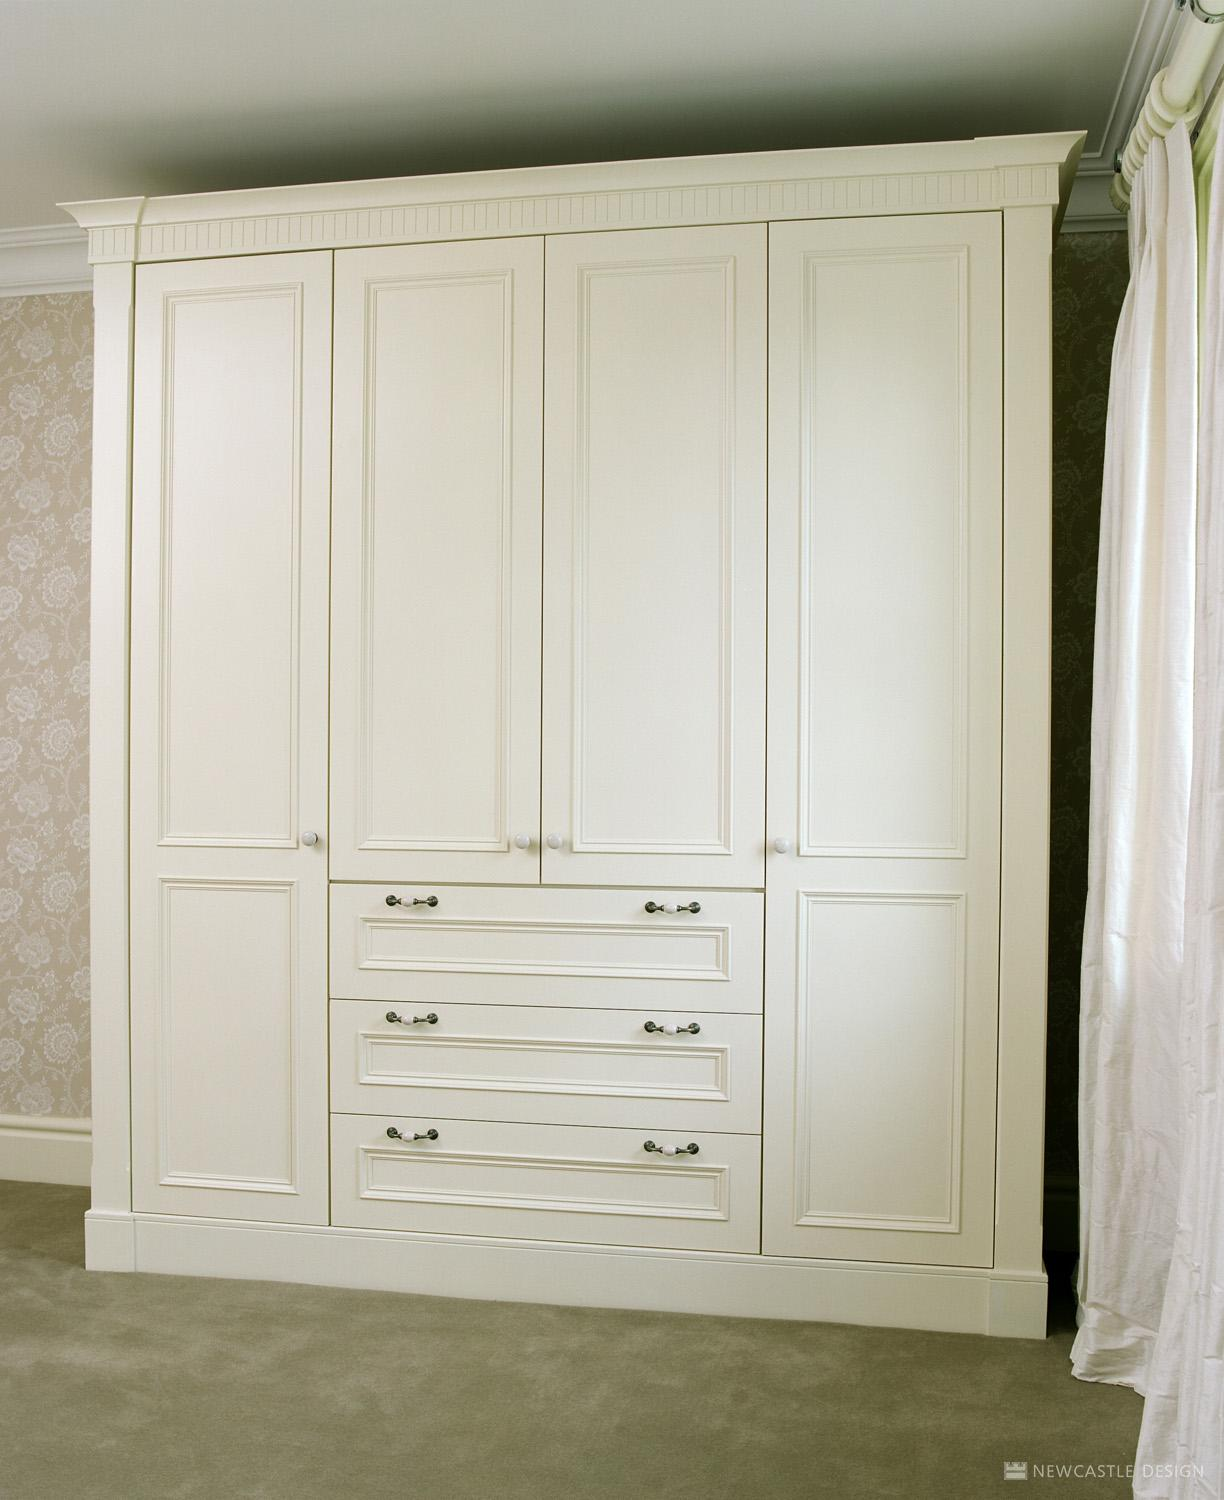 Furniture Design Wardrobes For Bedroom fitted wardrobes & bedroom furniture dublin, ireland